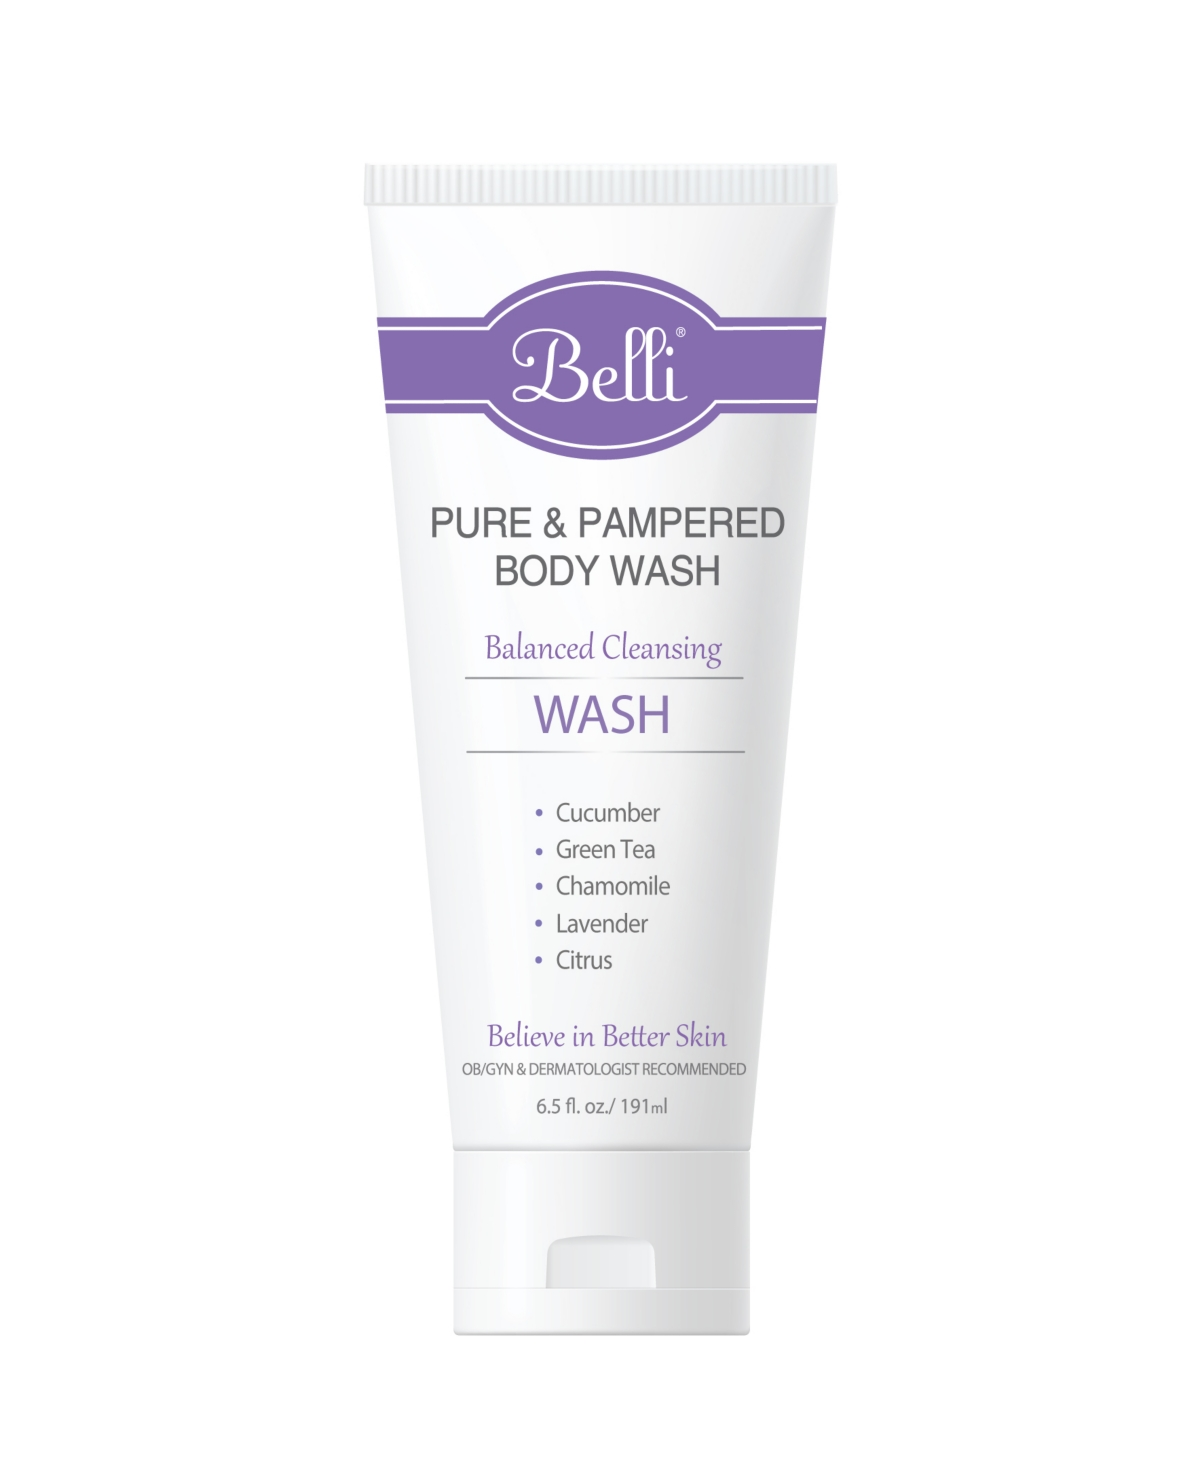 Belli Skin Care Pure and Pampered Body Wash, 6.5 fl oz